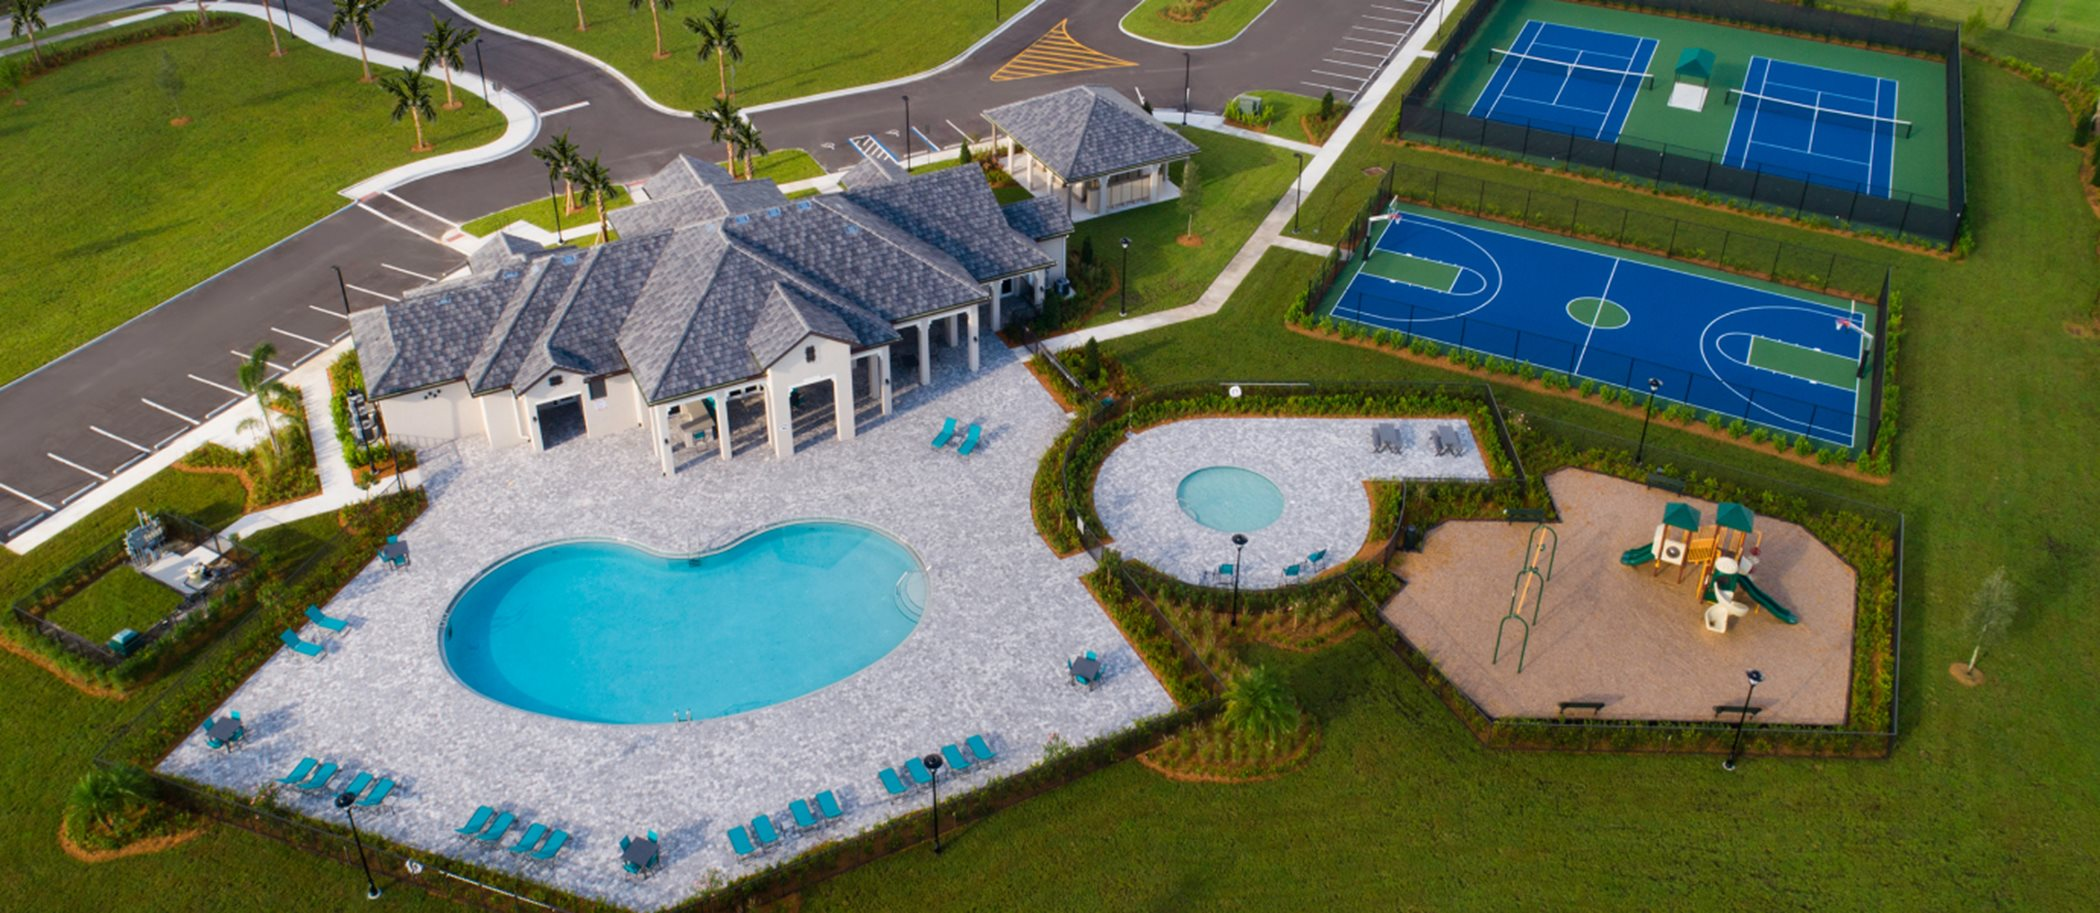 Aerial view of Copper Creek Clubhouse and Swimming Pool